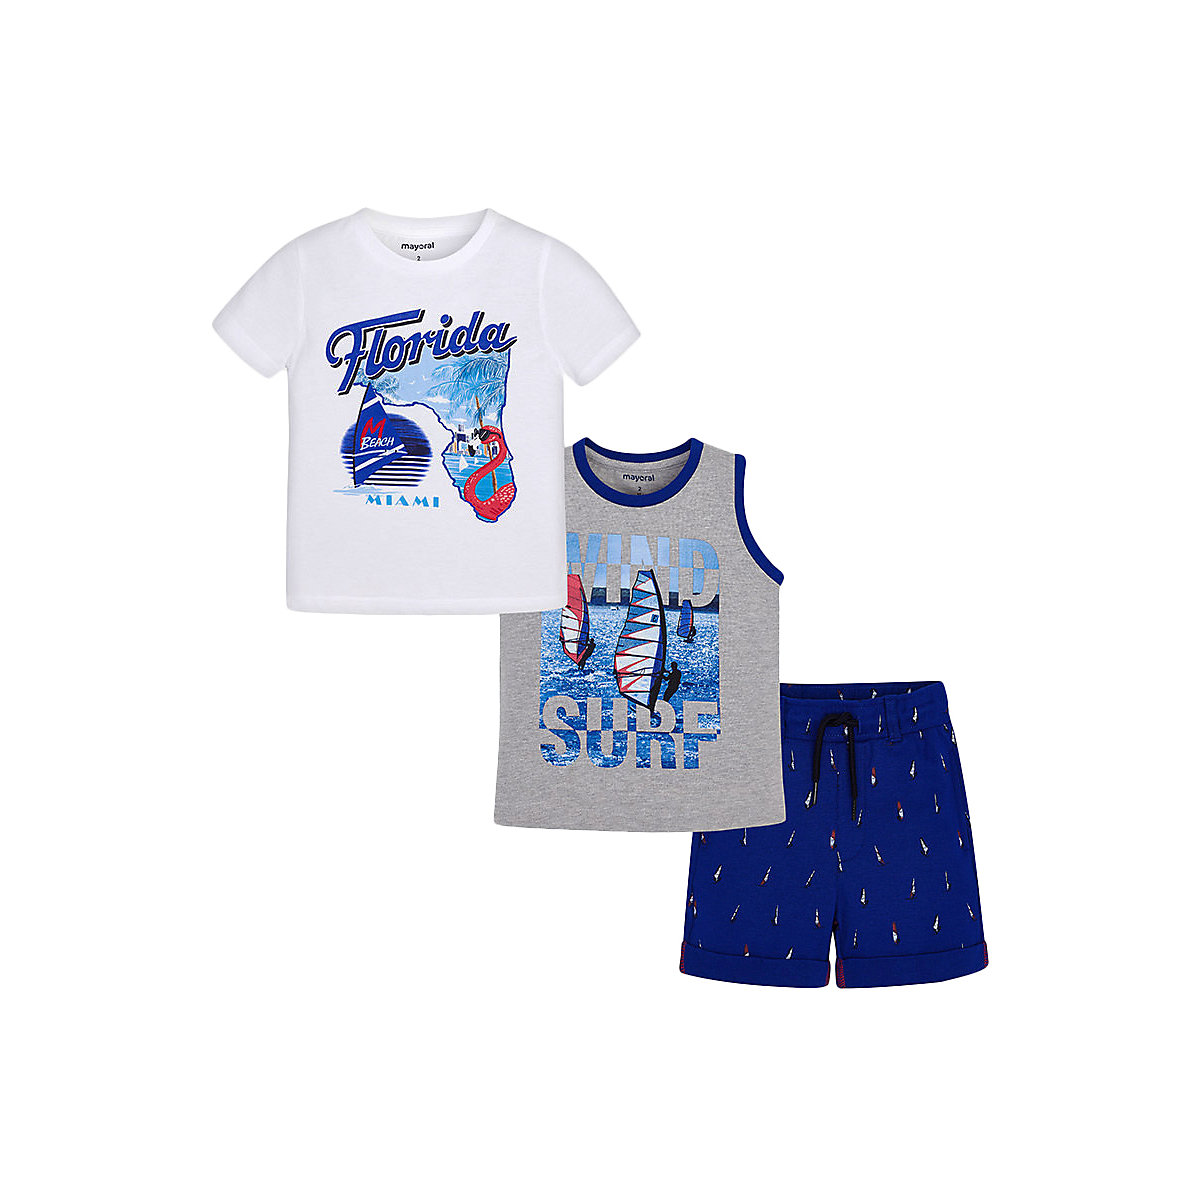 Фото - Baby's Sets MAYORAL 10681463 set of clothes for kids T-shirt legs shirt shorts girls and boys shein kiddie girls white striped side casual top and shorts two piece set clothes sets 2019 spring long sleeve kids suit set